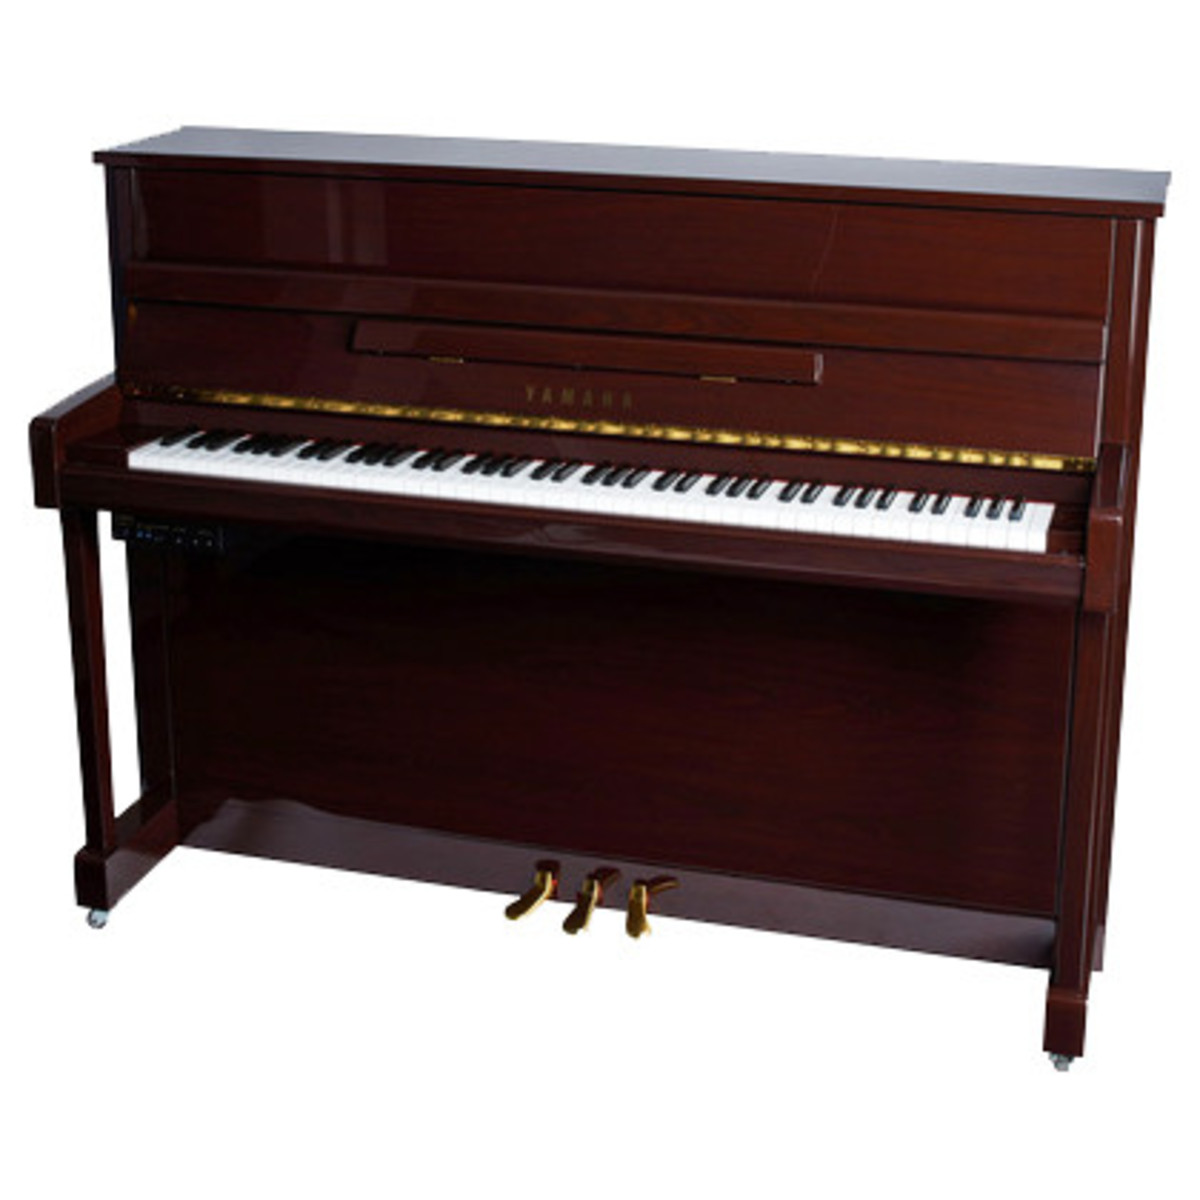 Yamaha b2 upright acoustic piano simulated mahogany for Yamaha piano upright